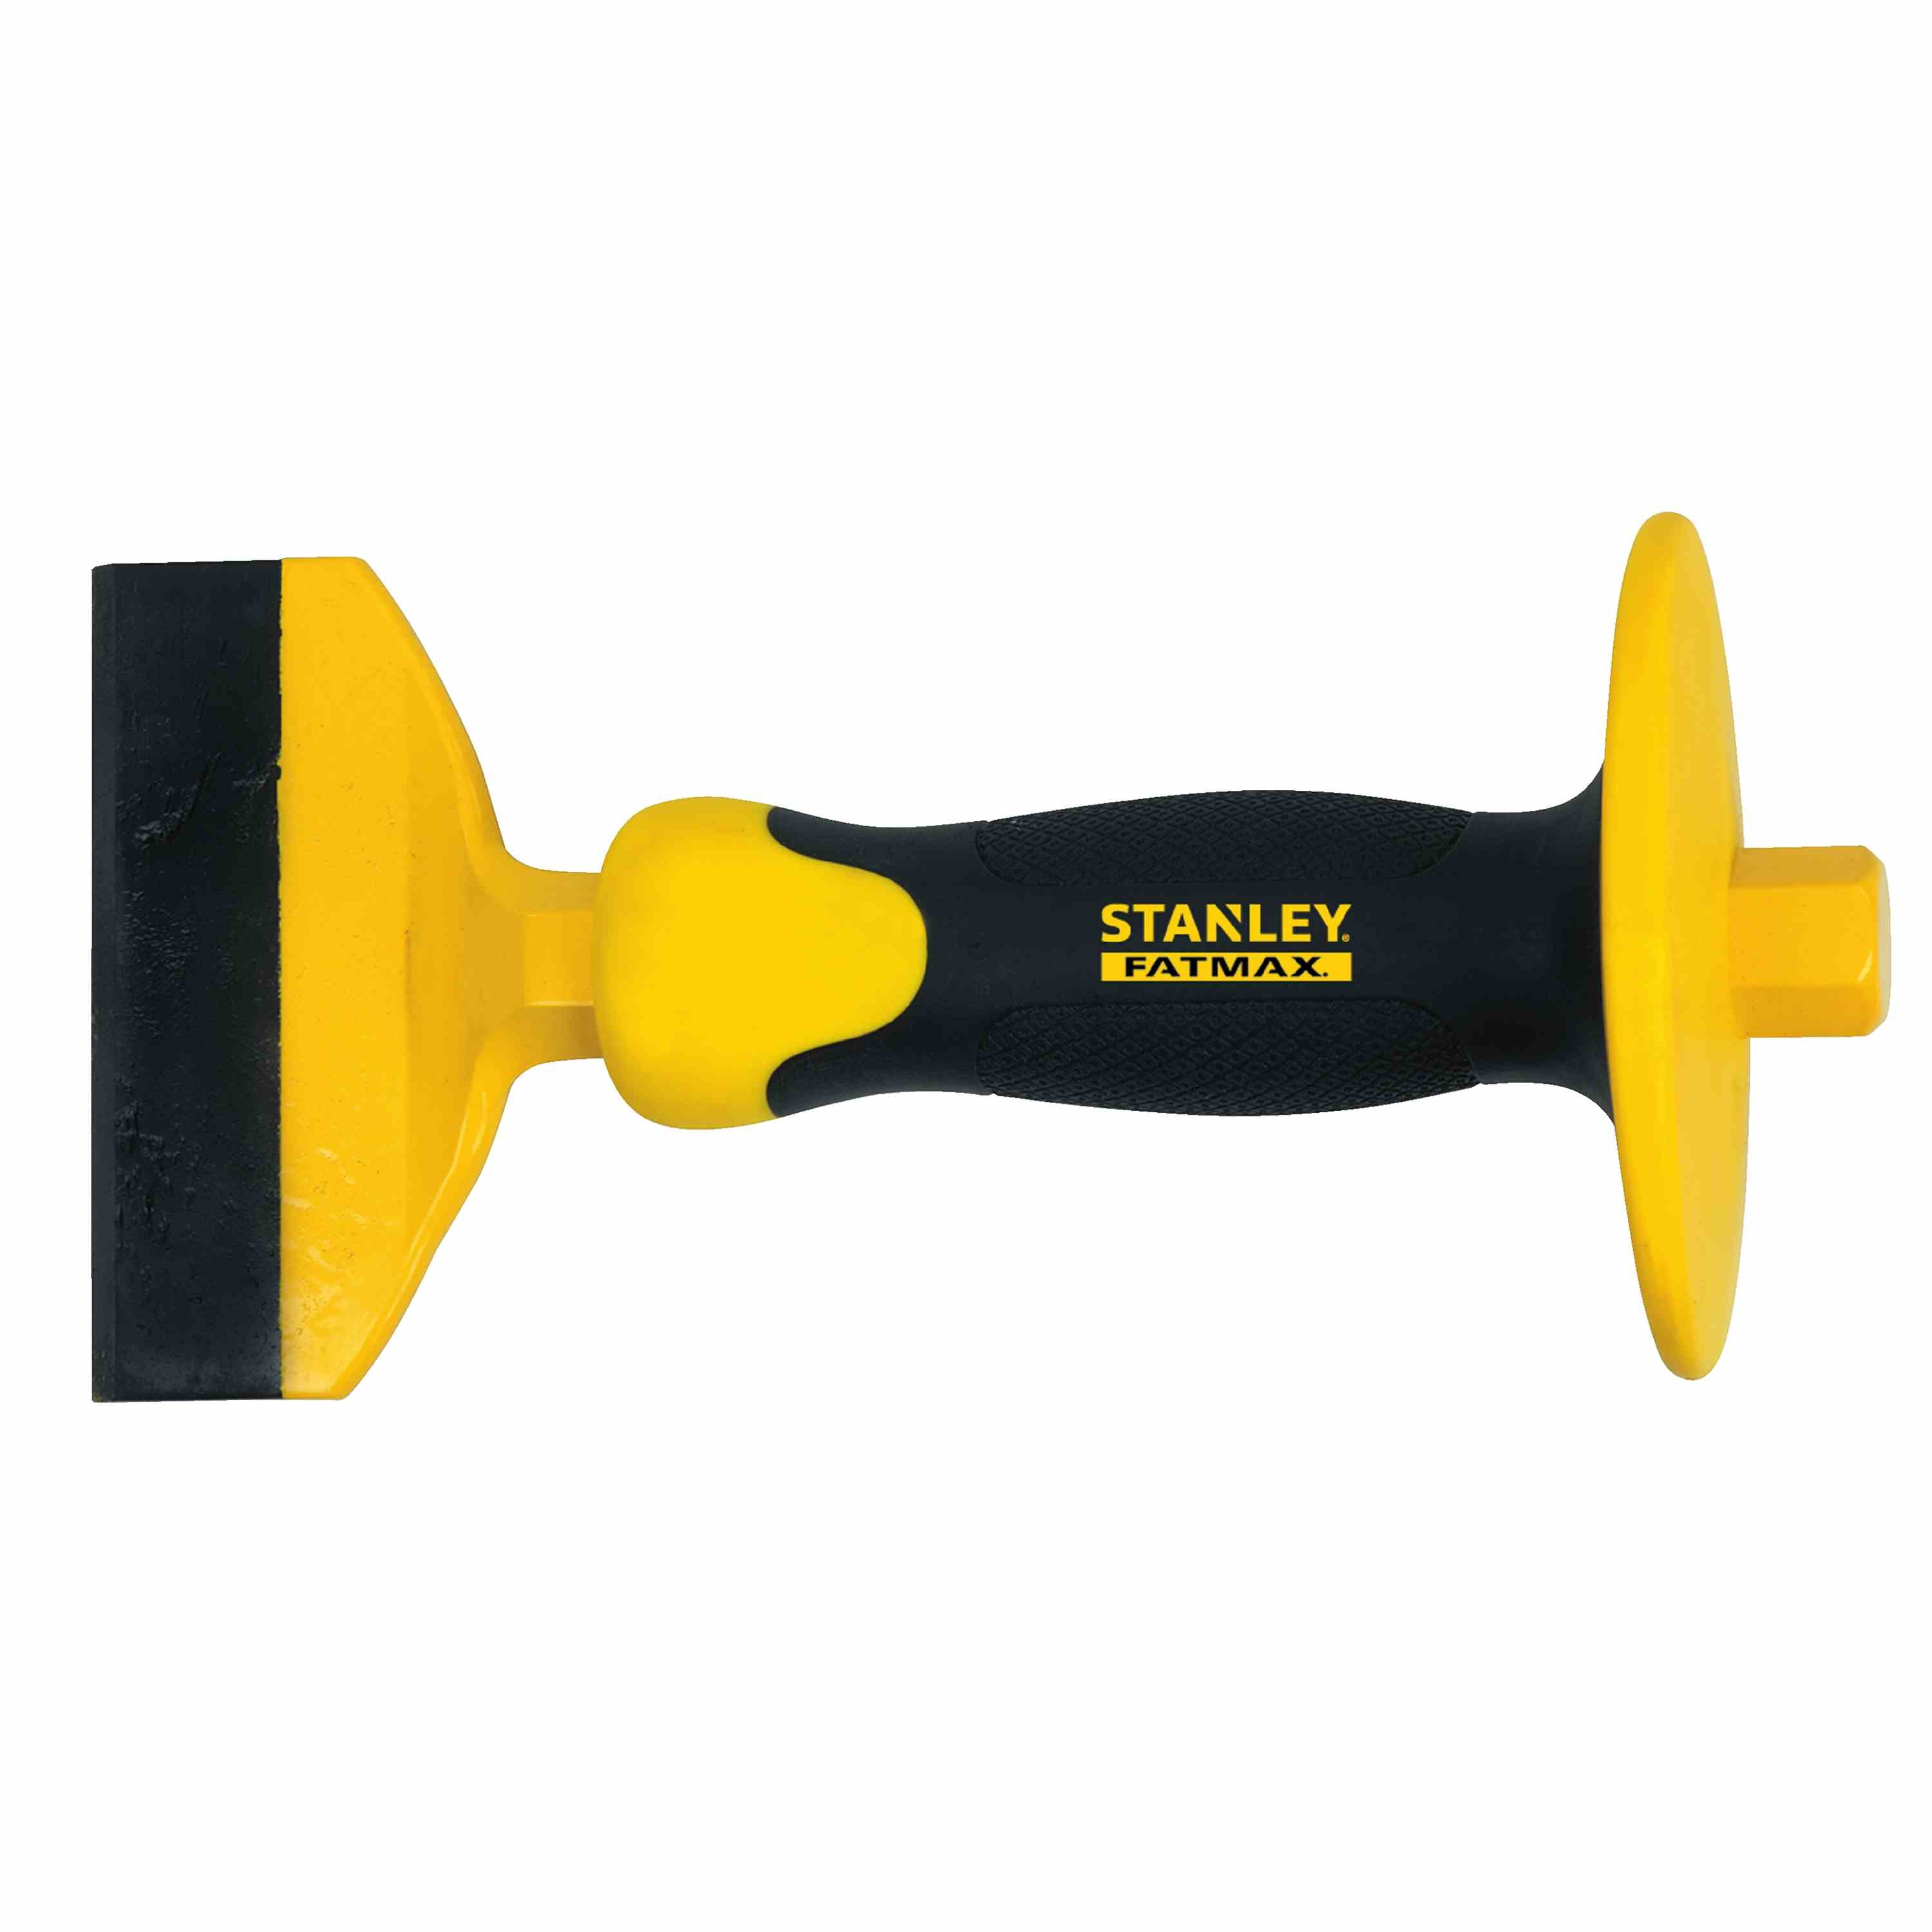 Stanley Tools - 4 in X 812 in FATMAX Brick Set - 16-328